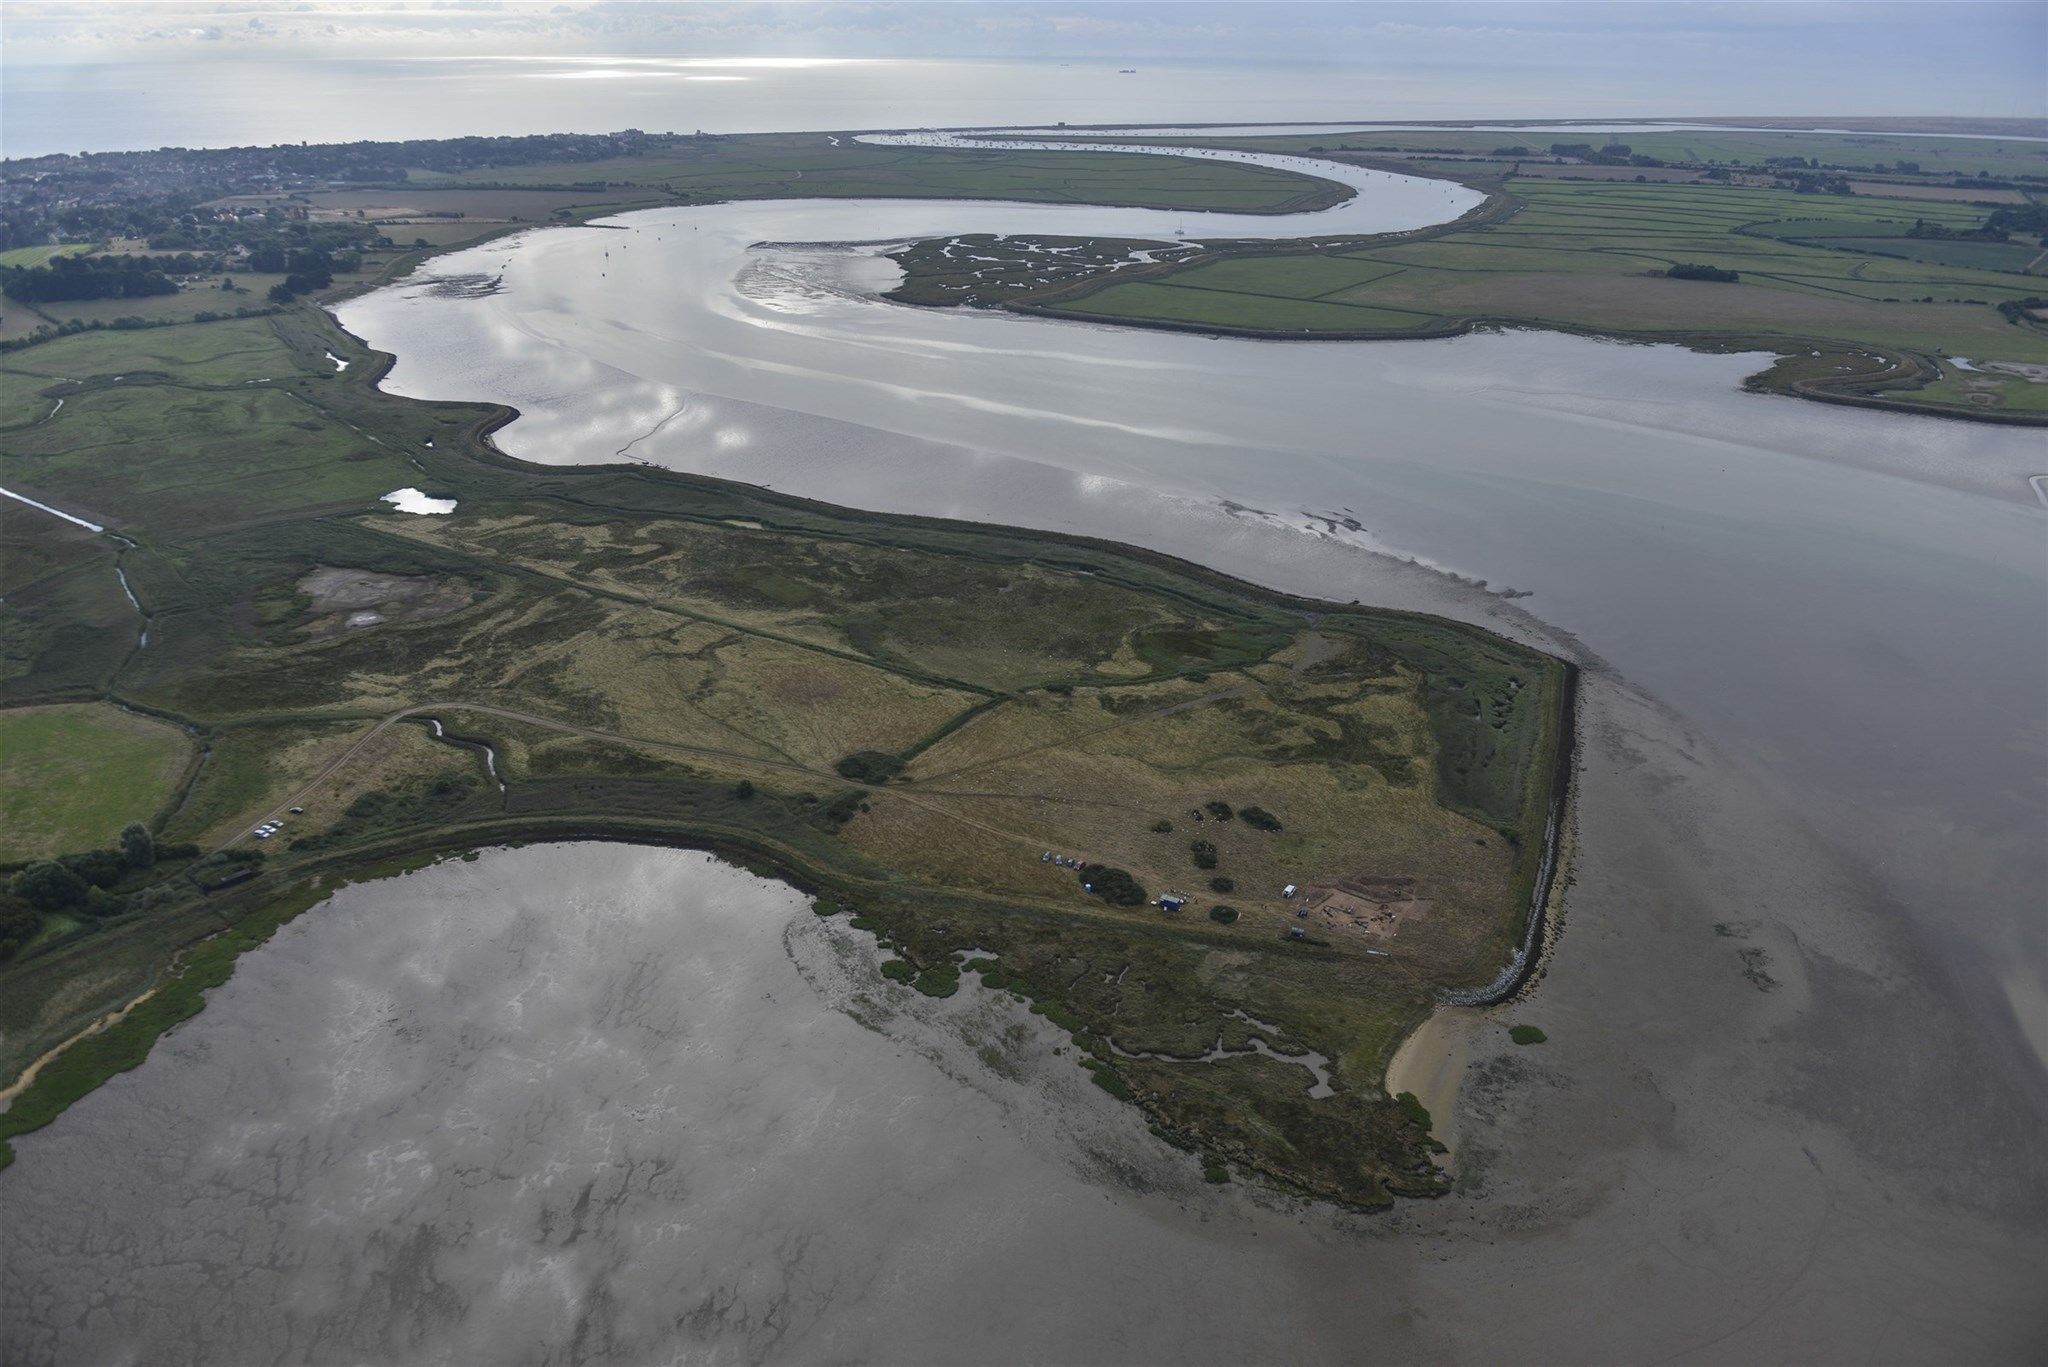 Aerial view of Barbers Point and the River Alde, with the excavation site in the foreground